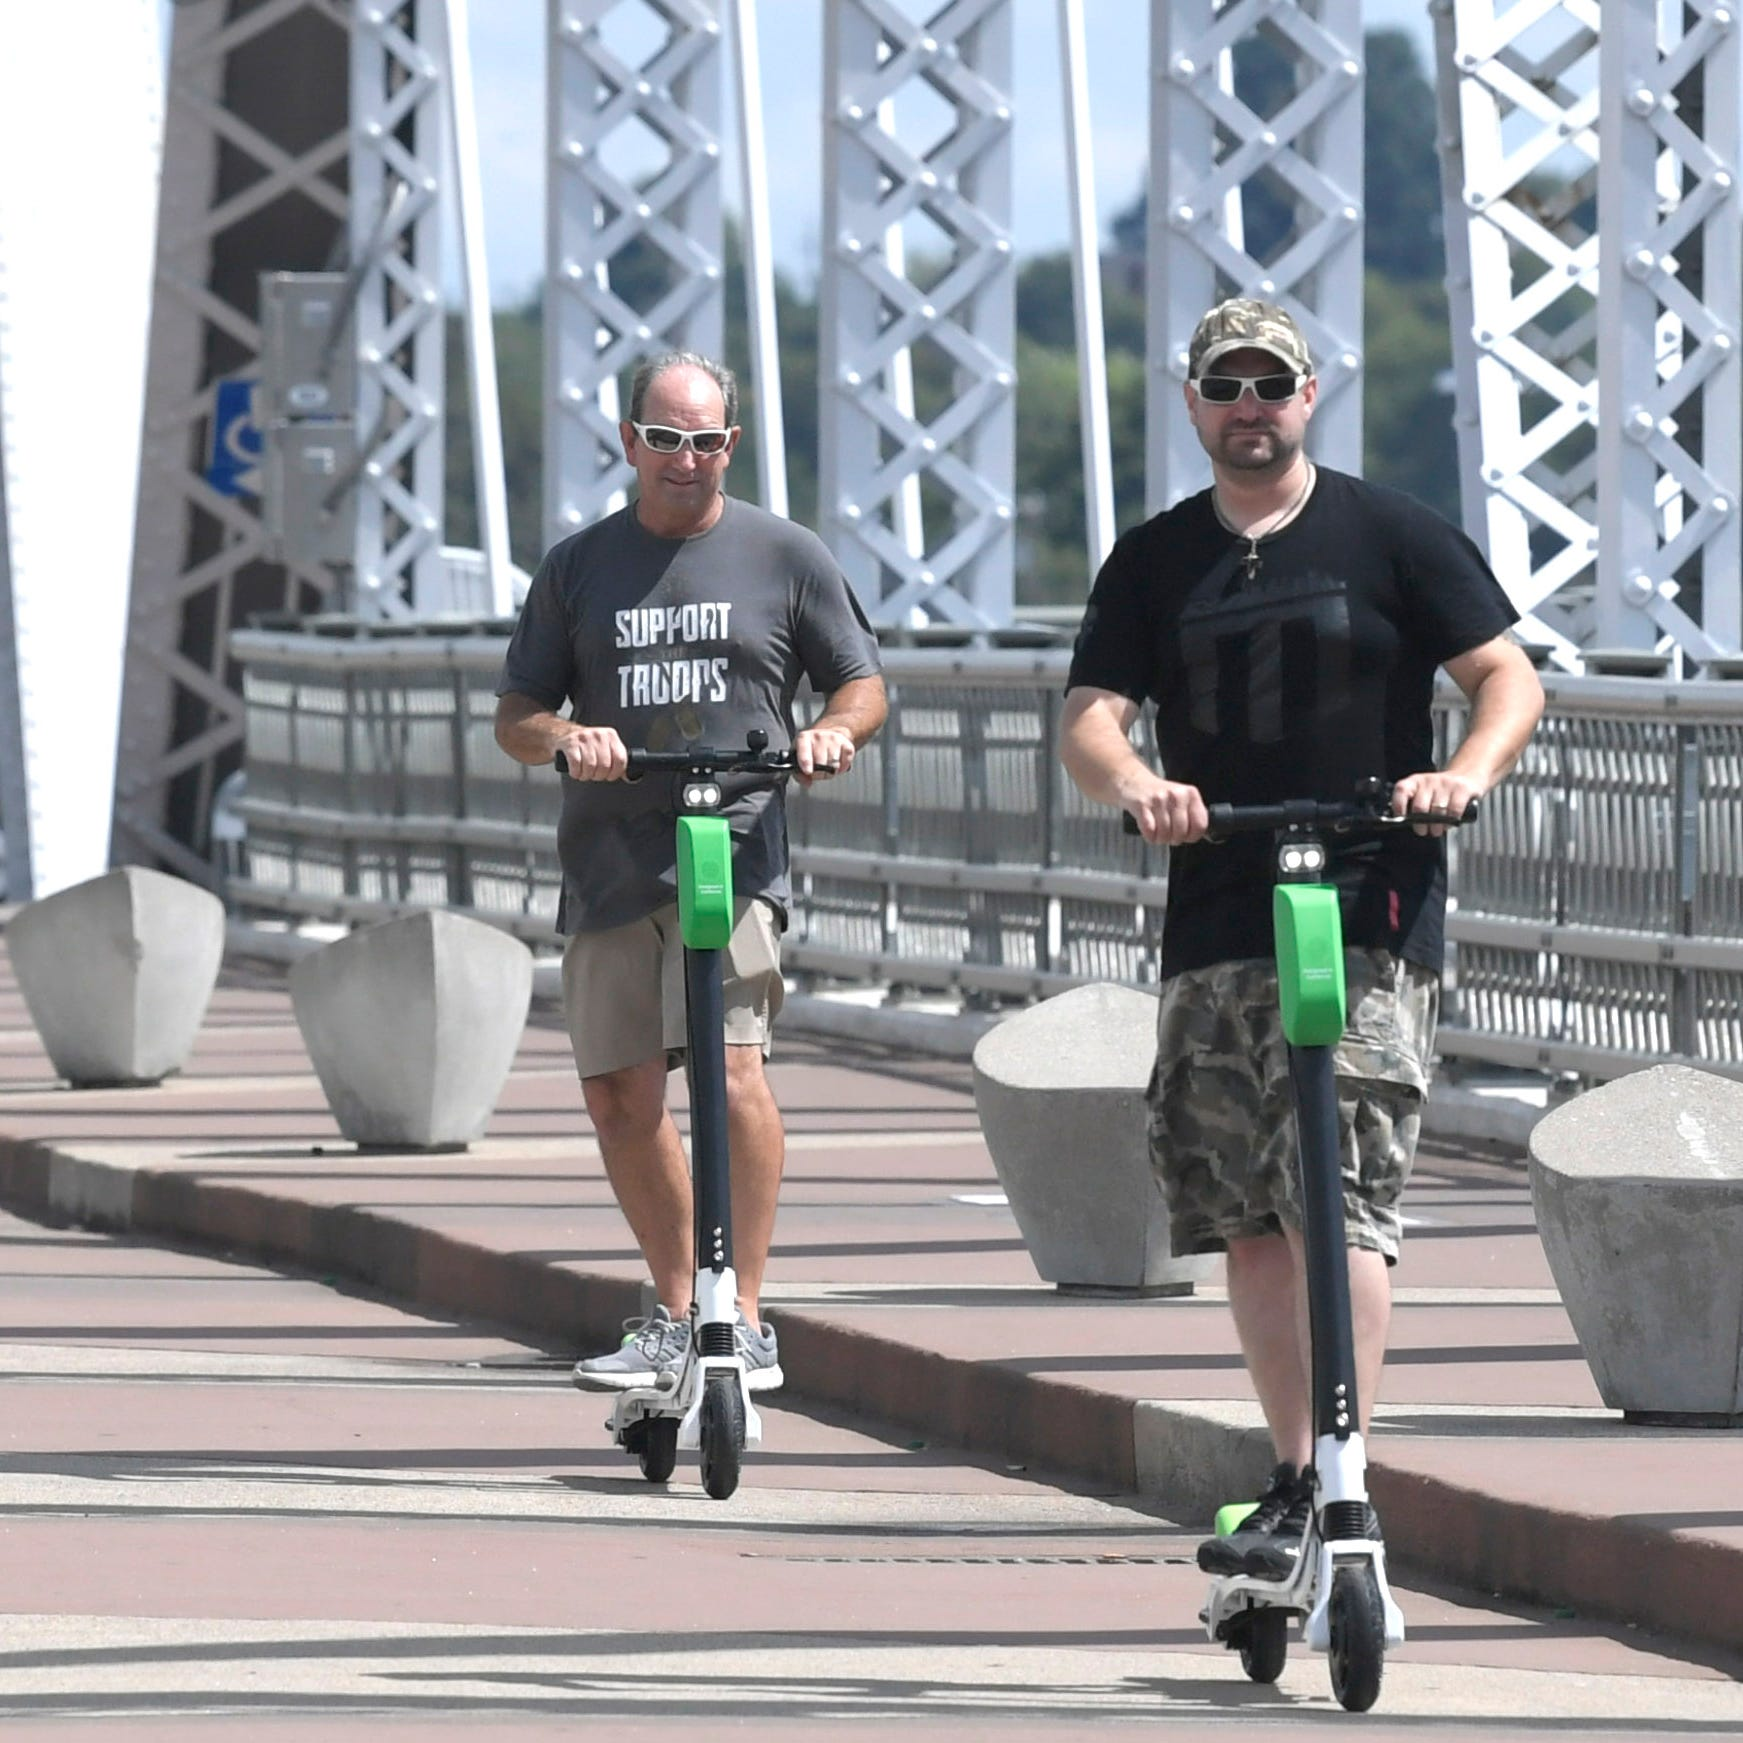 Scooters are spreading in Nashville and they're not going away, but riders have to stop breaking the law | Plazas